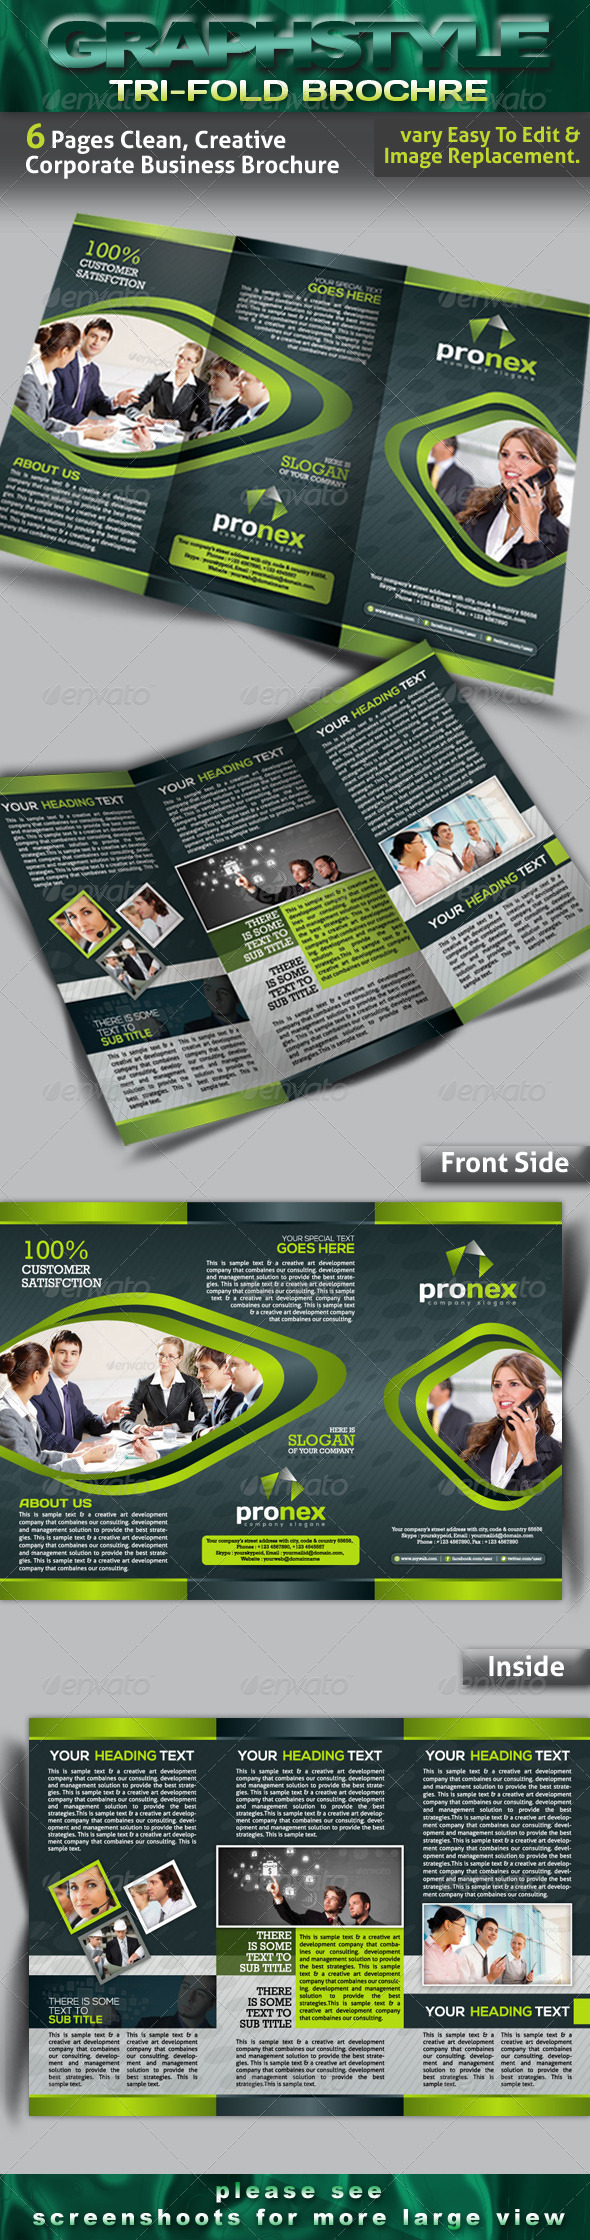 GraphicRiver Pronex Tri-fold Corporate Business Brochure 4289951